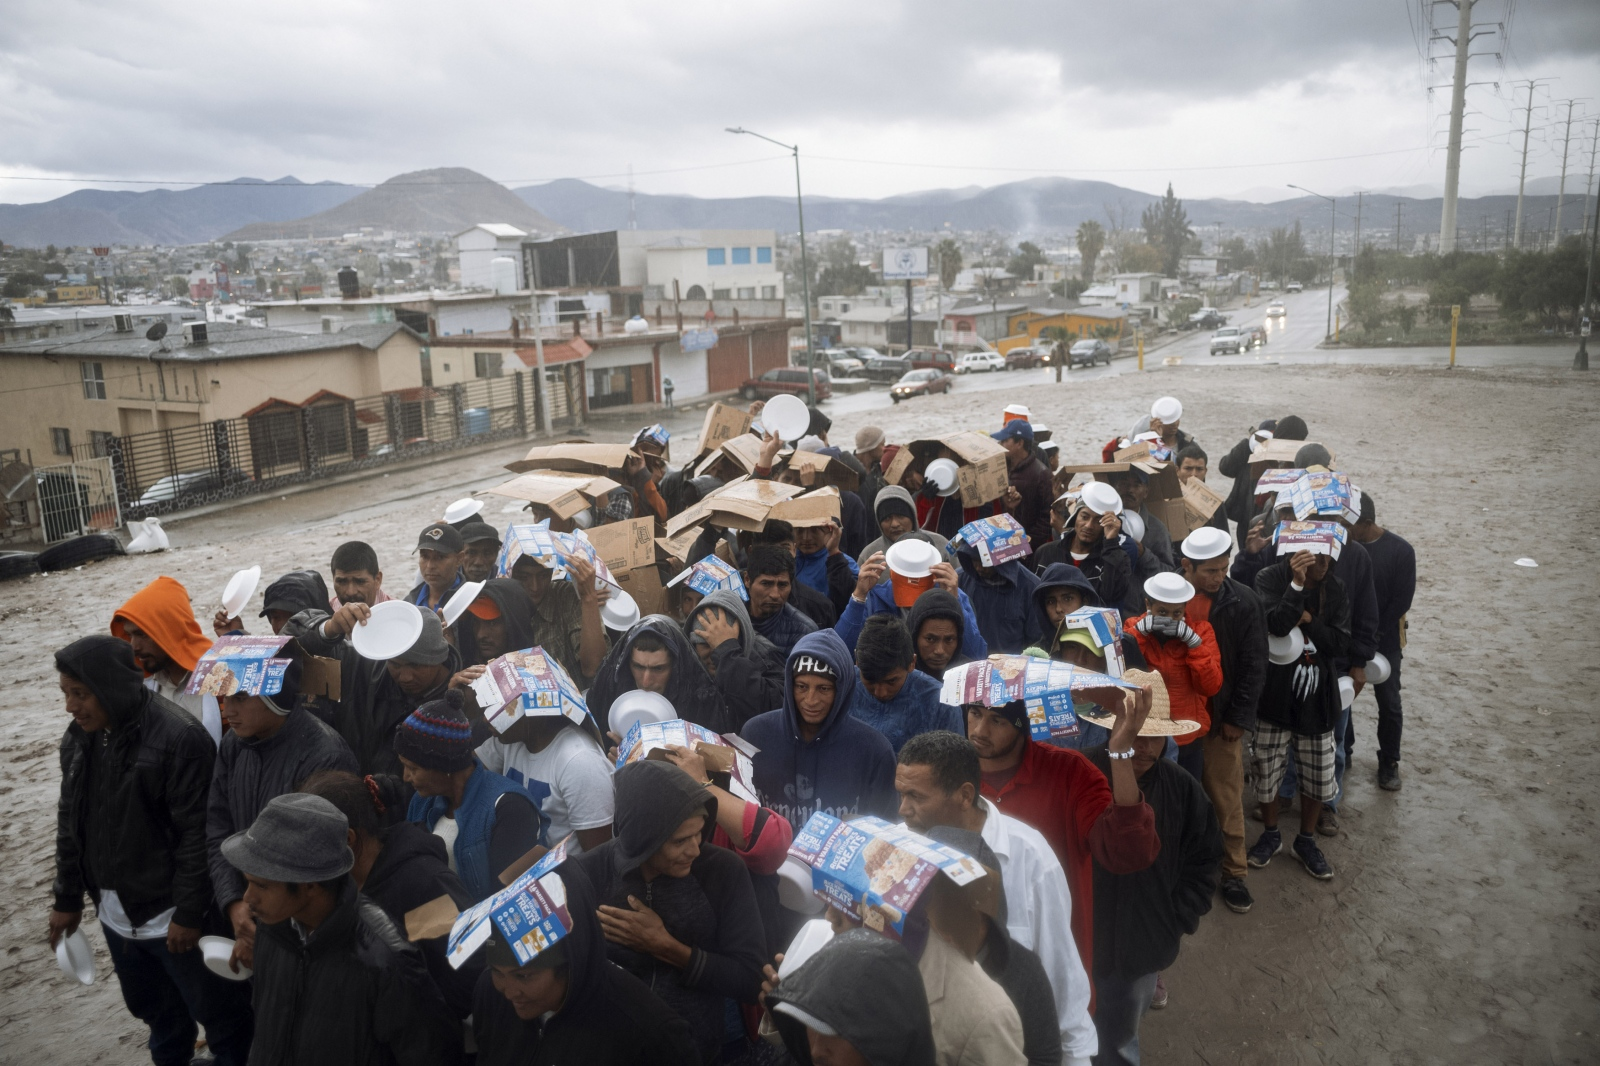 Asylum seekers that have trekked thousands of miles across Latin America fleeing violence and extreme poverty wait in the rain for bean soup provided by Refugio Esperanza Church, outside of barretal, a refugee camp on the outskirts of Tijuana, Mexico where thousands of people wait in limbo.